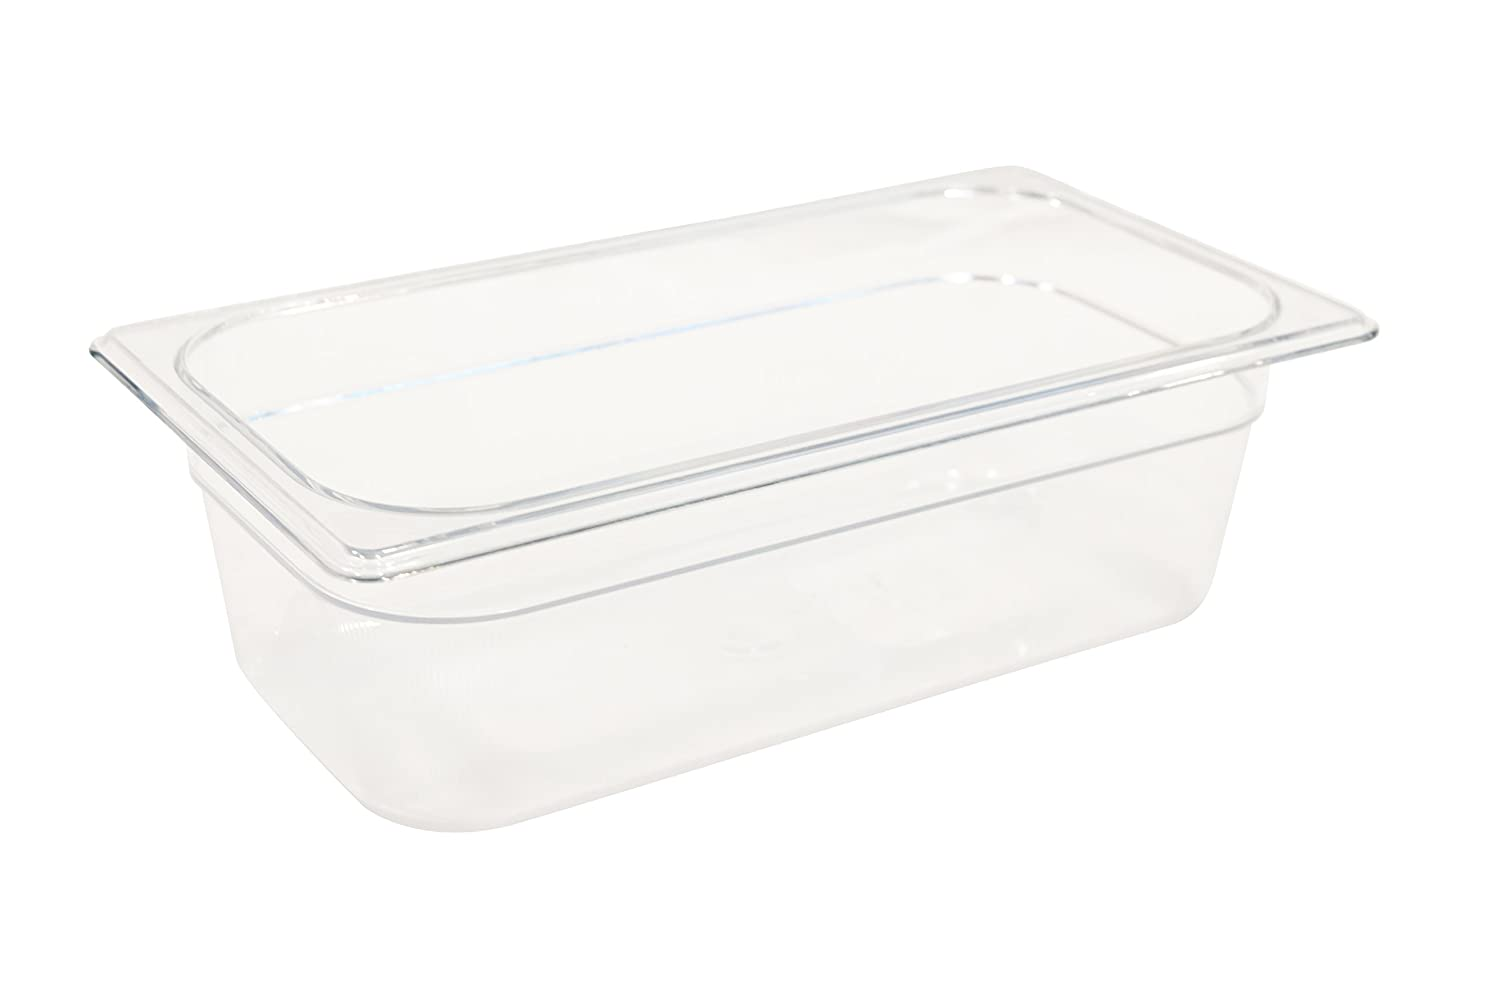 Rubbermaid Commercial Products Cold Food Insert Pan for Restaurants/Kitchens/Cafeterias, 1/3 Size, 4 Inches Deep, Clear (FG117P00CLR)